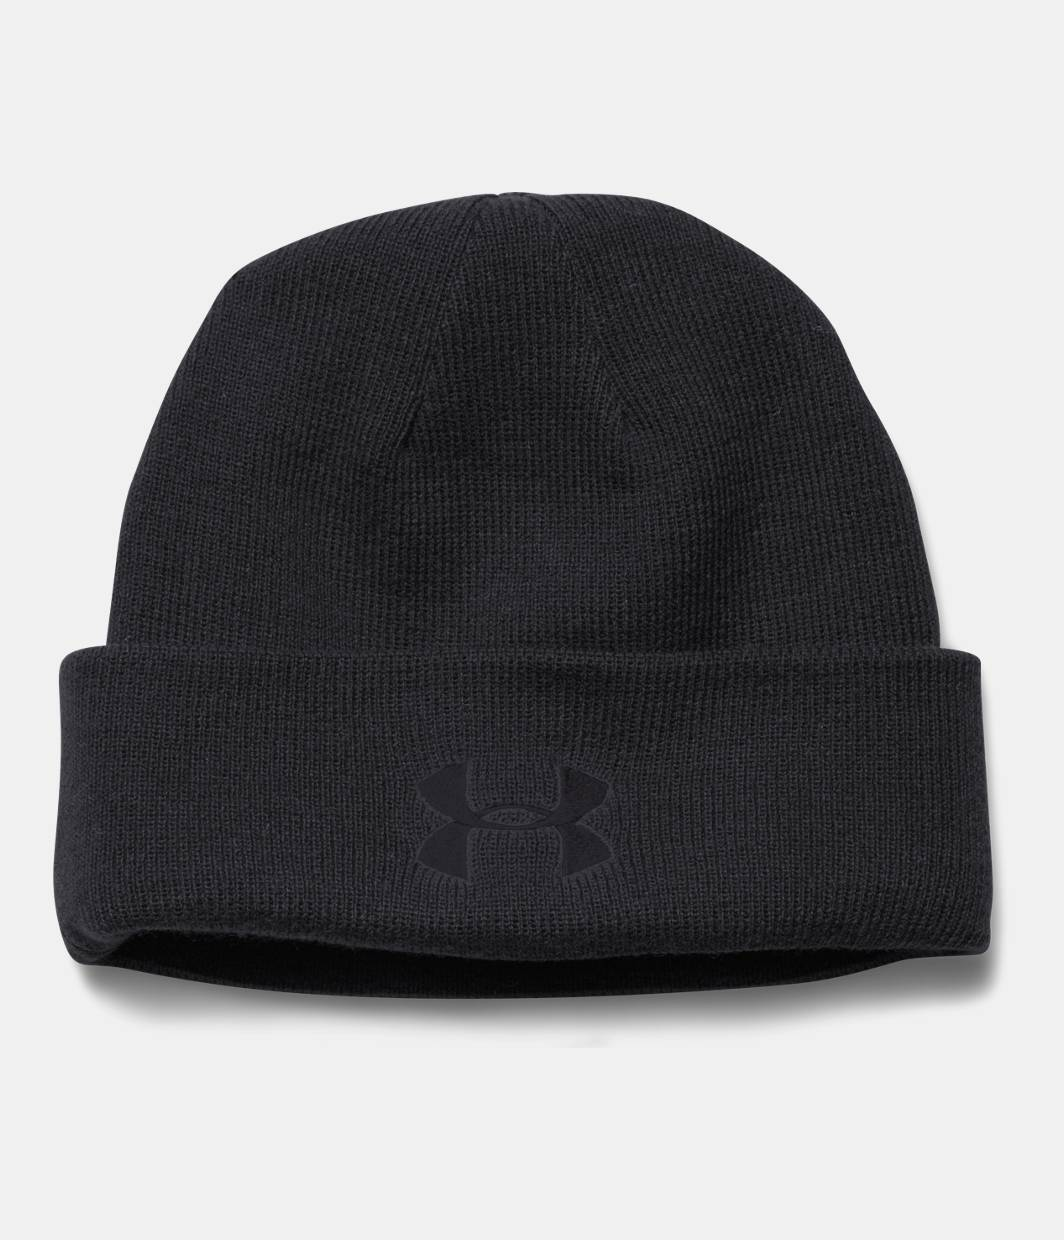 d8c717484e5 Buy UA Tactical Stealth Beanie (Navy Blue) - Under Armour Online at ...